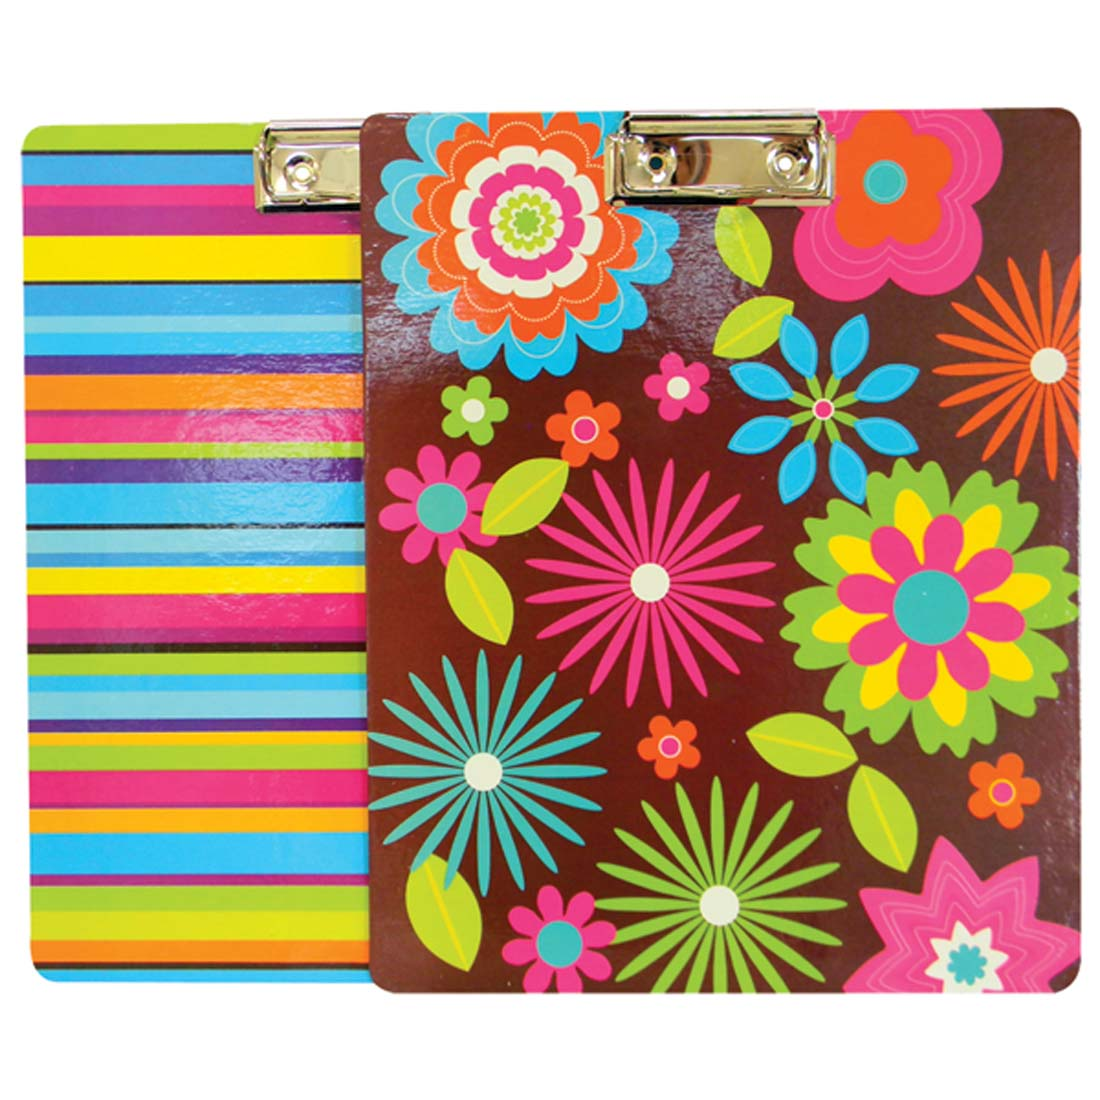 View CLIP BOARD 6 X 9 INCH ASSORTED COLORS & DESIGNS